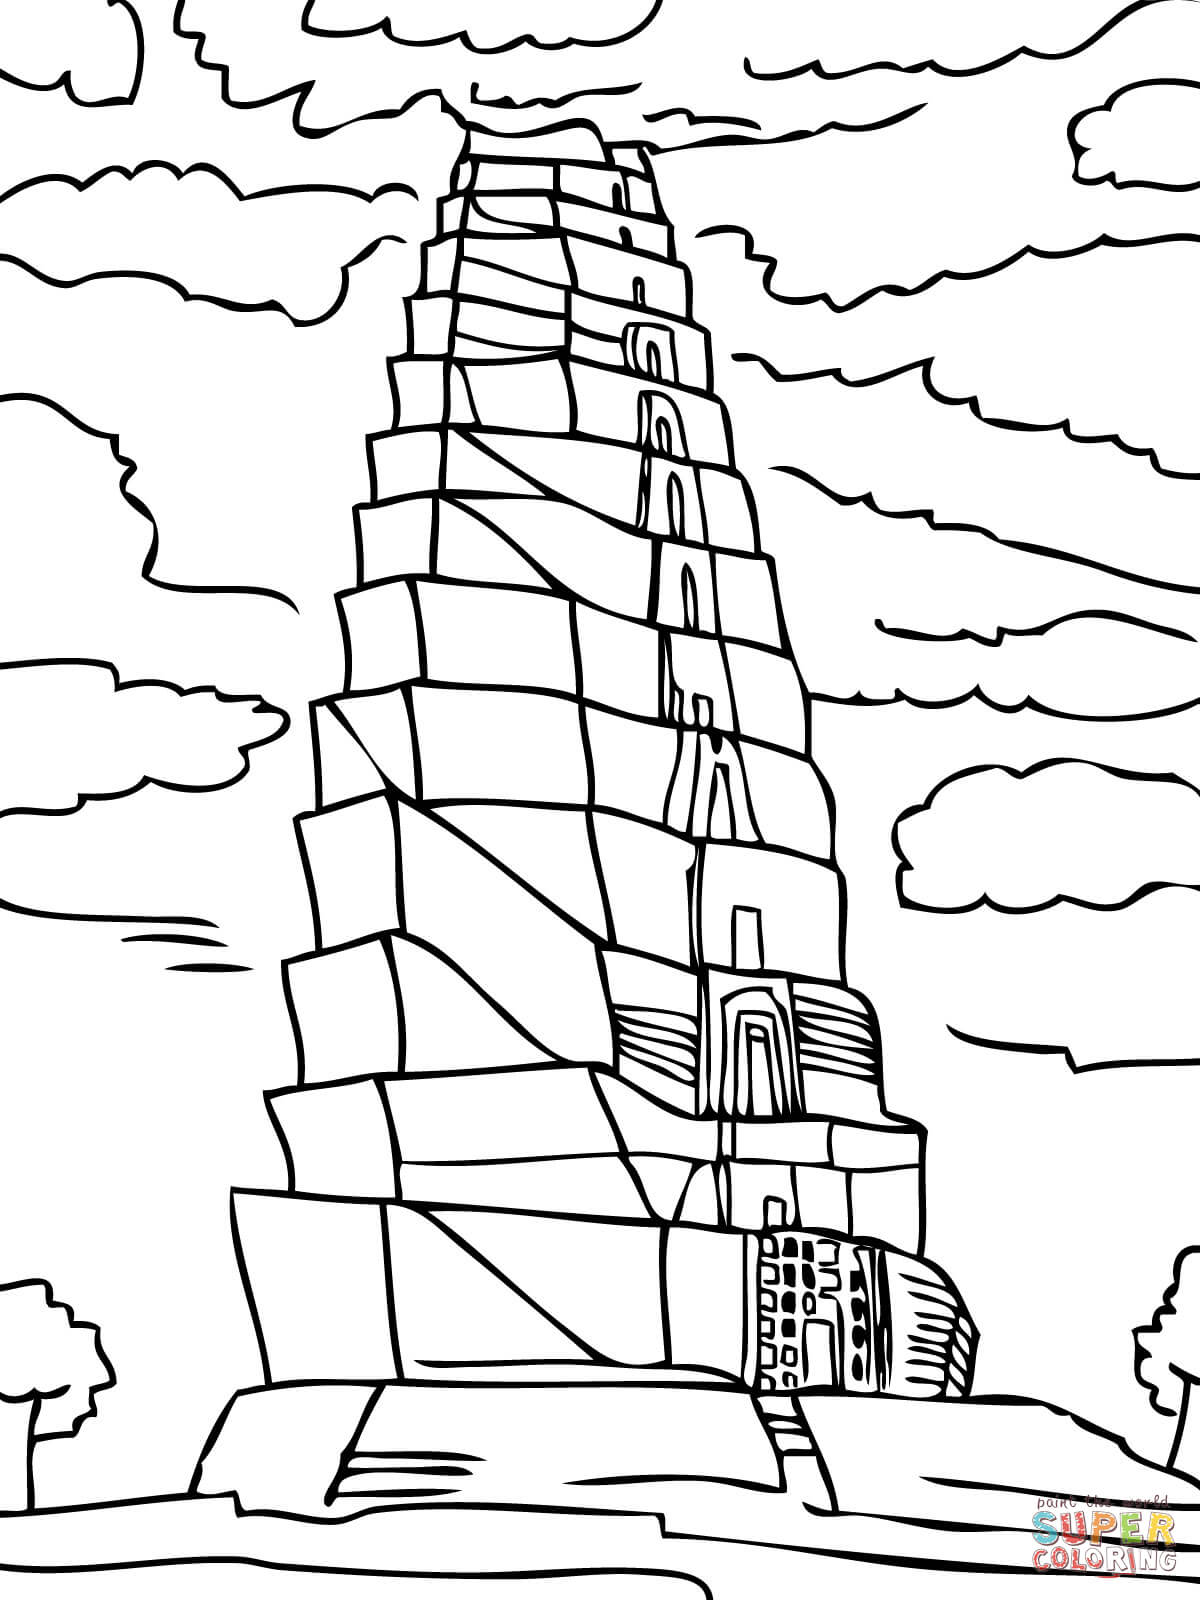 tower of babel coloring pages for kids tower of babel coloring page coloring pages coloring pages tower for kids of babel